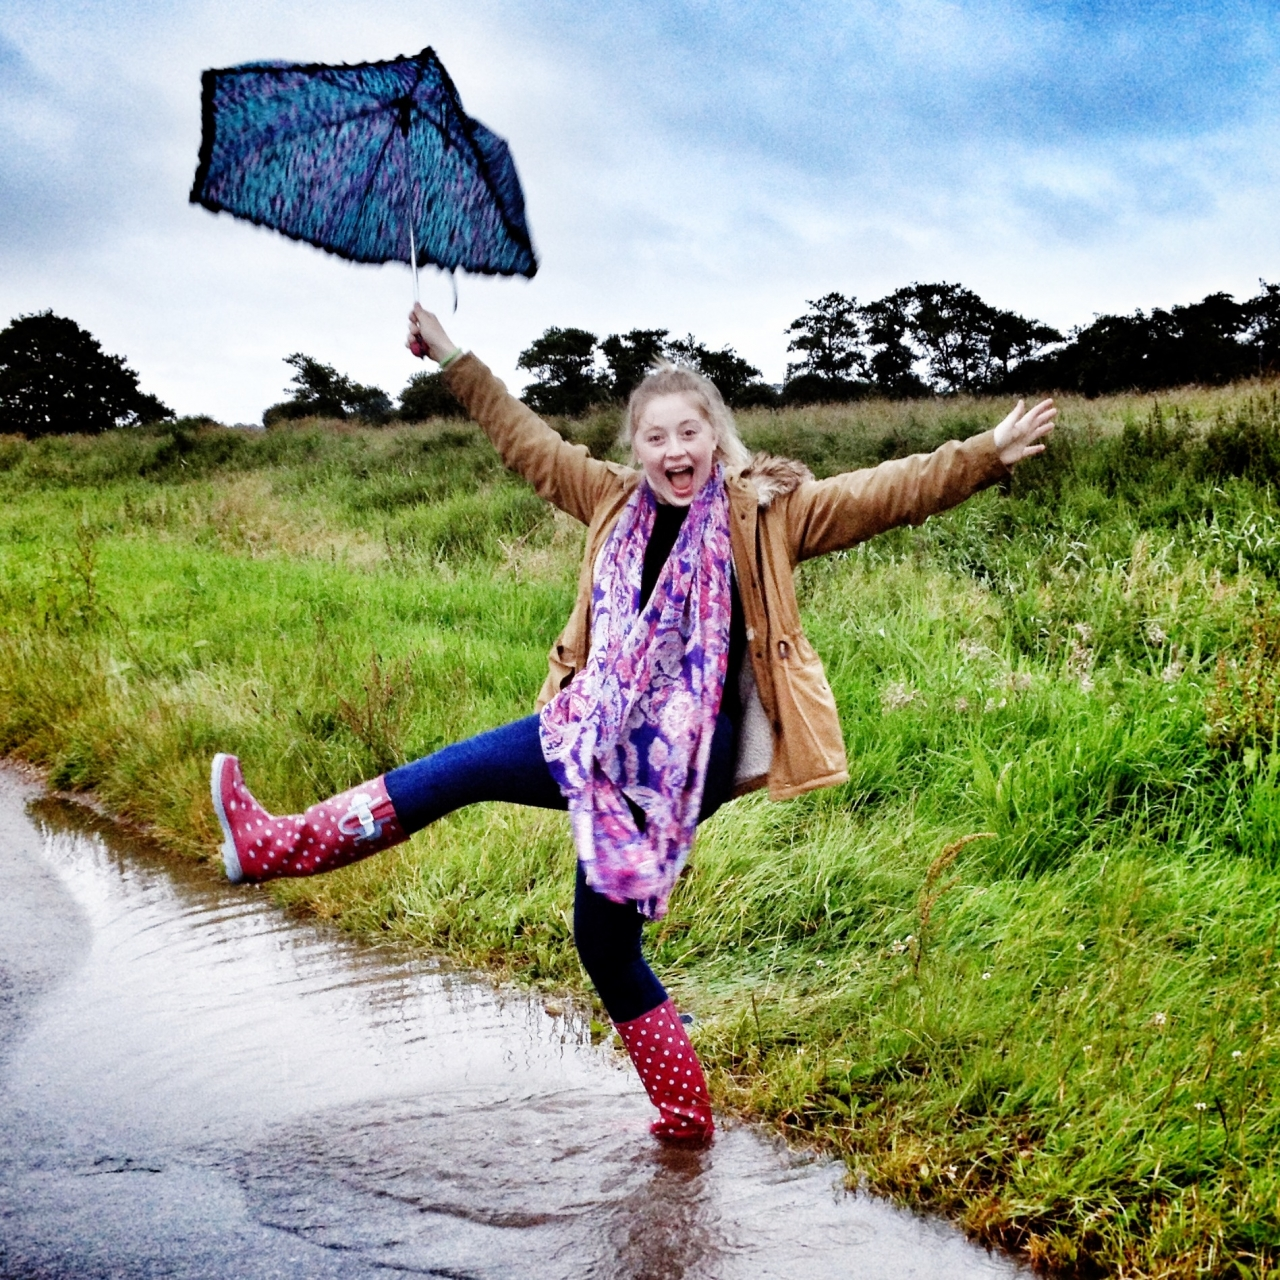 #Day20 #Fun #21DaysWorld #Lincolnshire having fun in our typical UK weather #mobitog